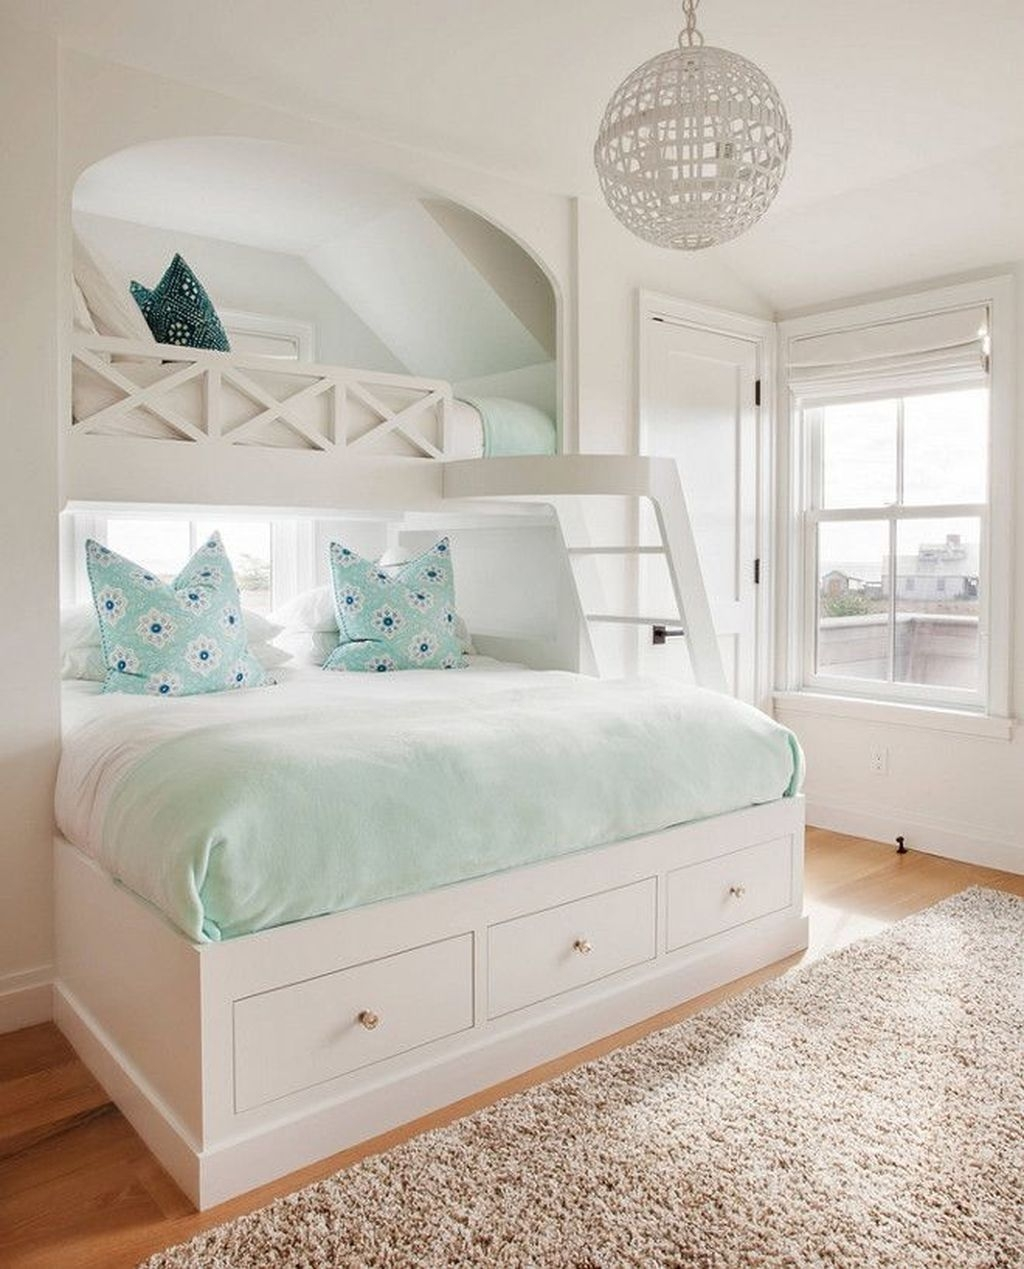 Cool And Functional Built In Bunk Beds Ideas For Kids13